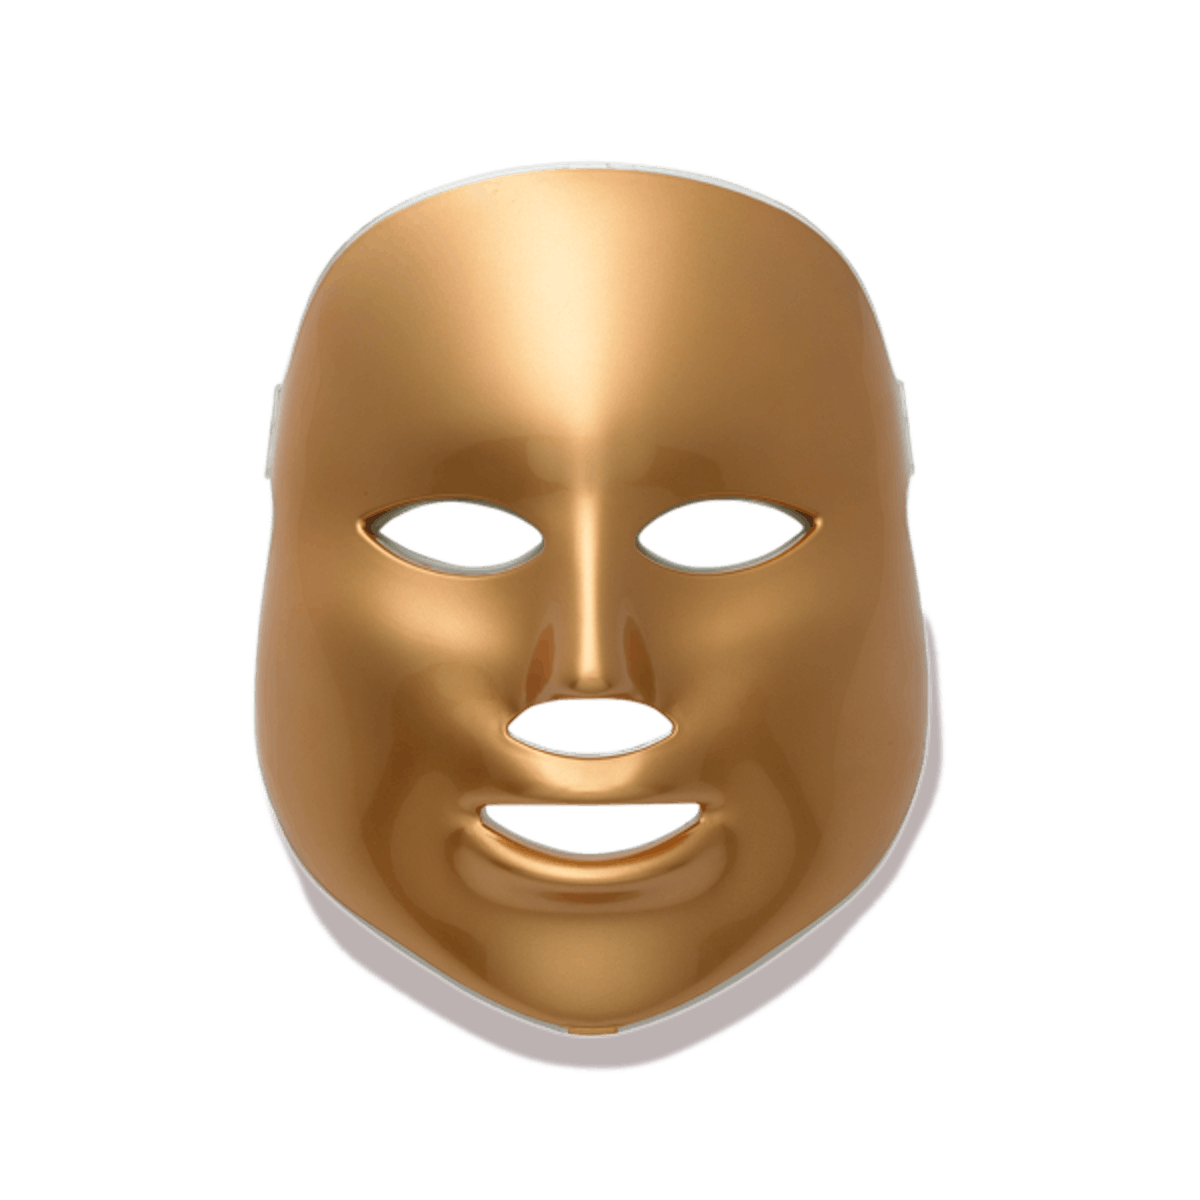 Light Therapy Golden Facial Treatment Mask